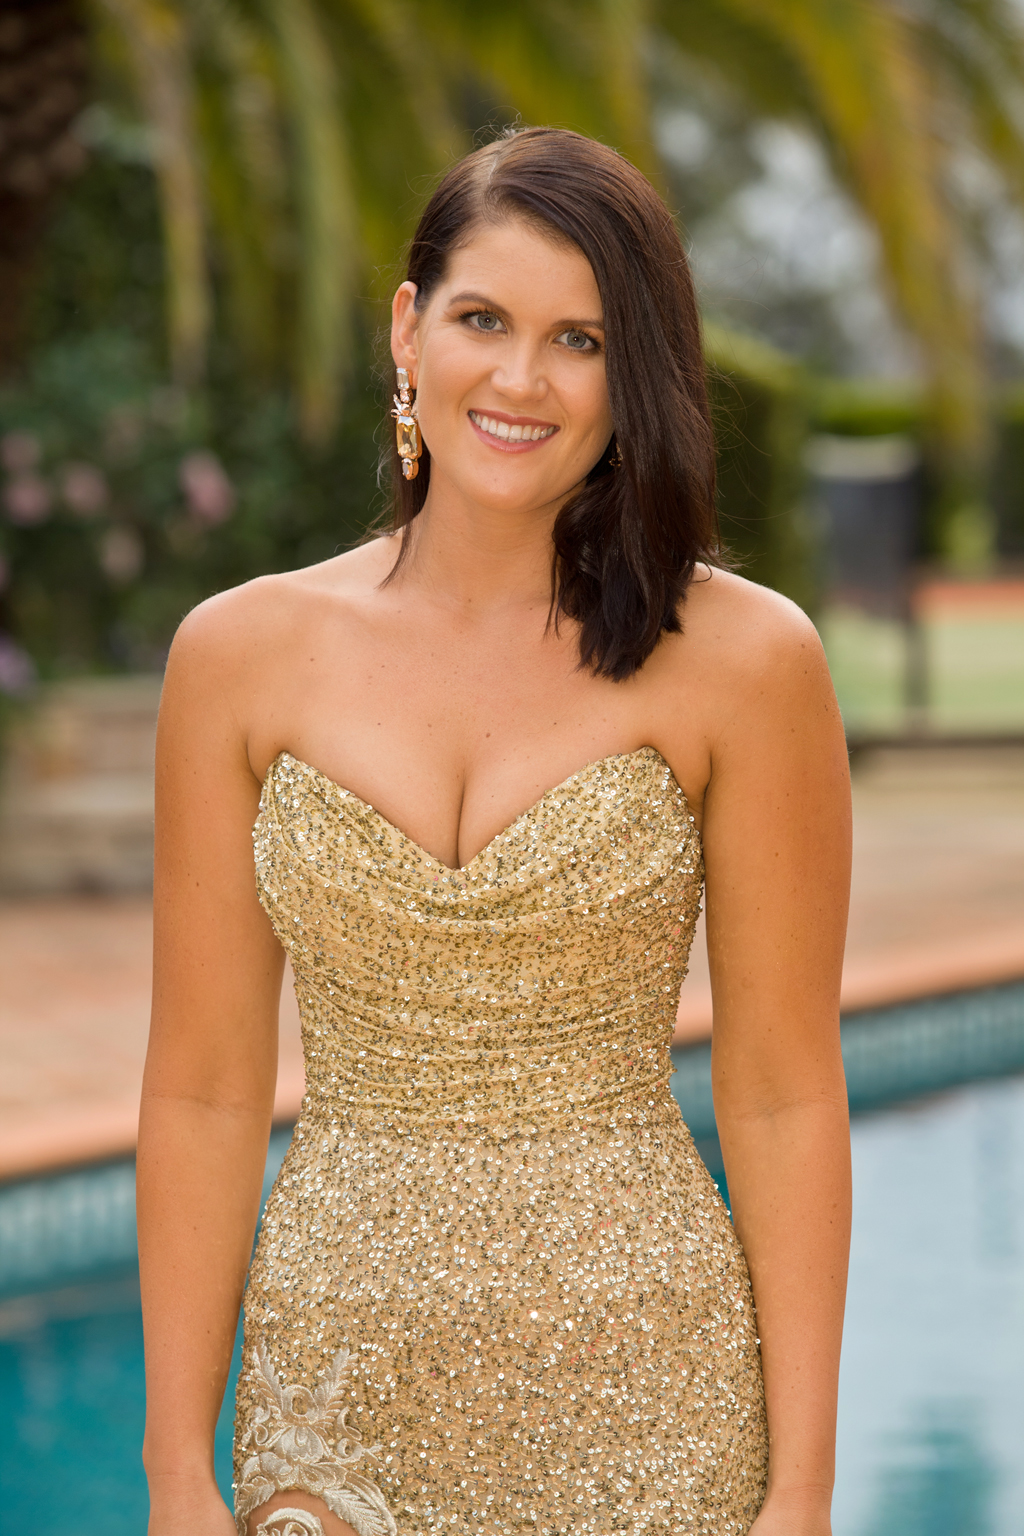 Vintaea Carlos is a contestant on the upcoming fourth season of The Bachelor.